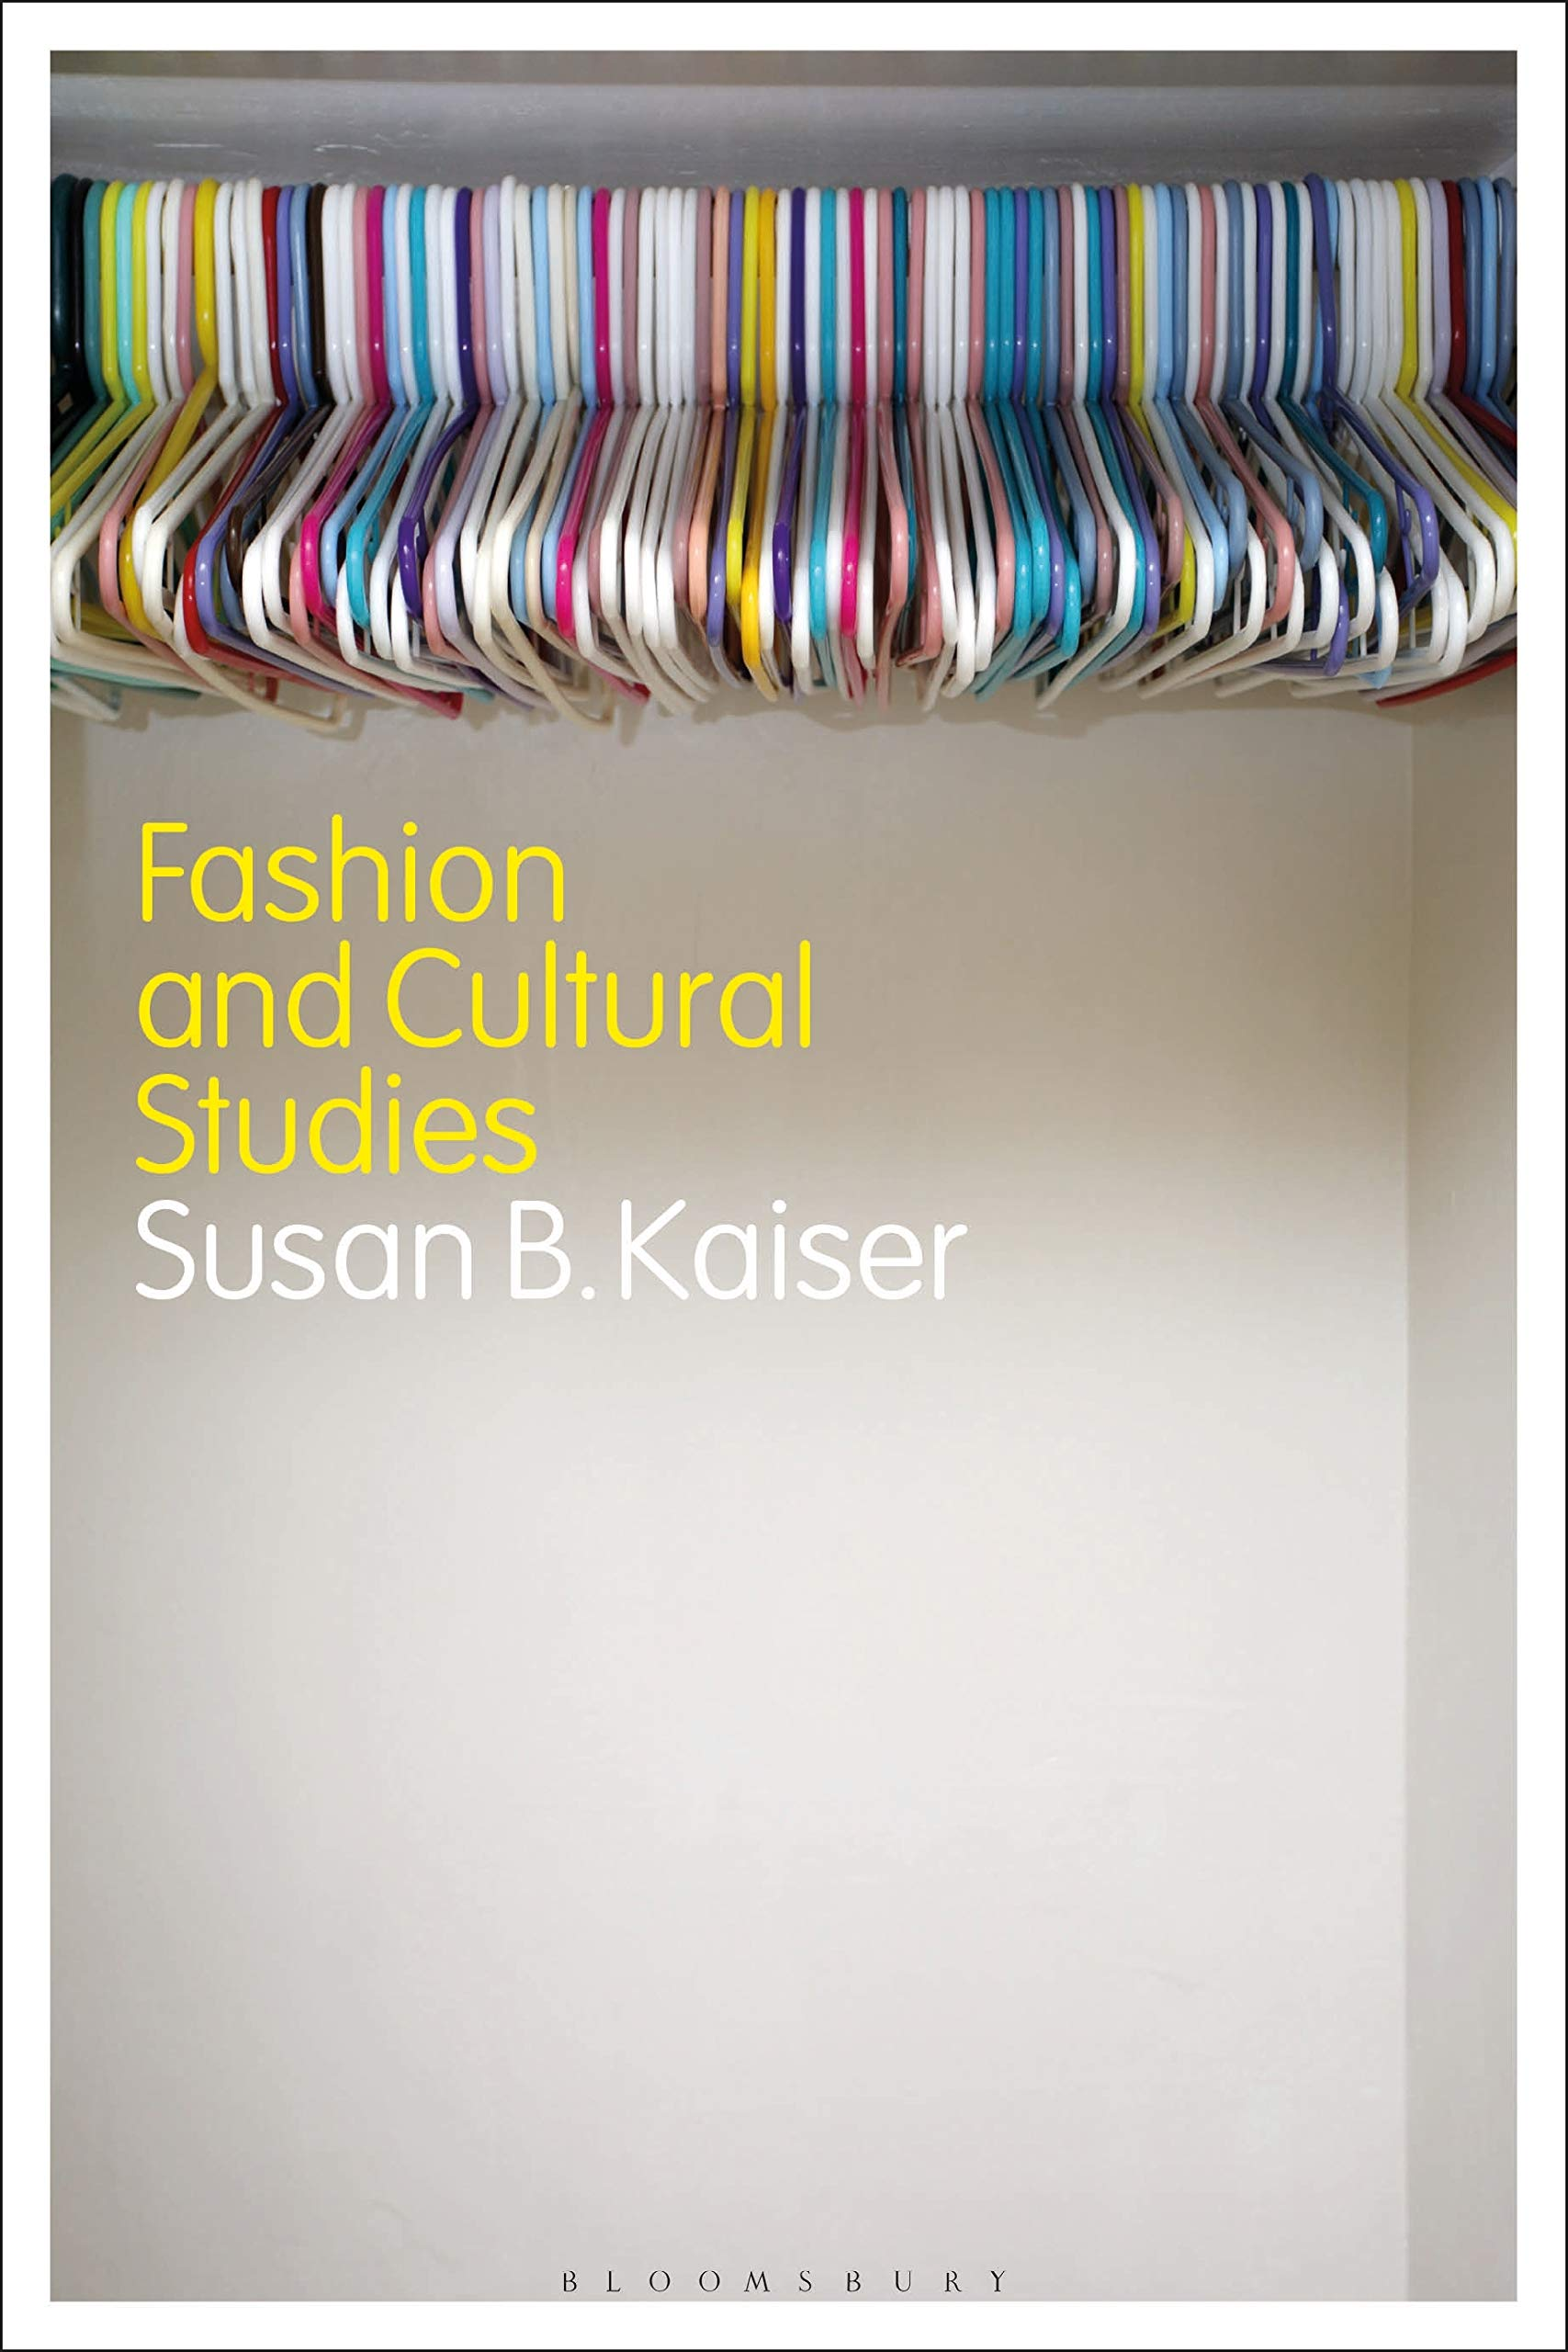 Fashion and Cultural Studies: Susan B. Kaiser: 9781350109605 ...